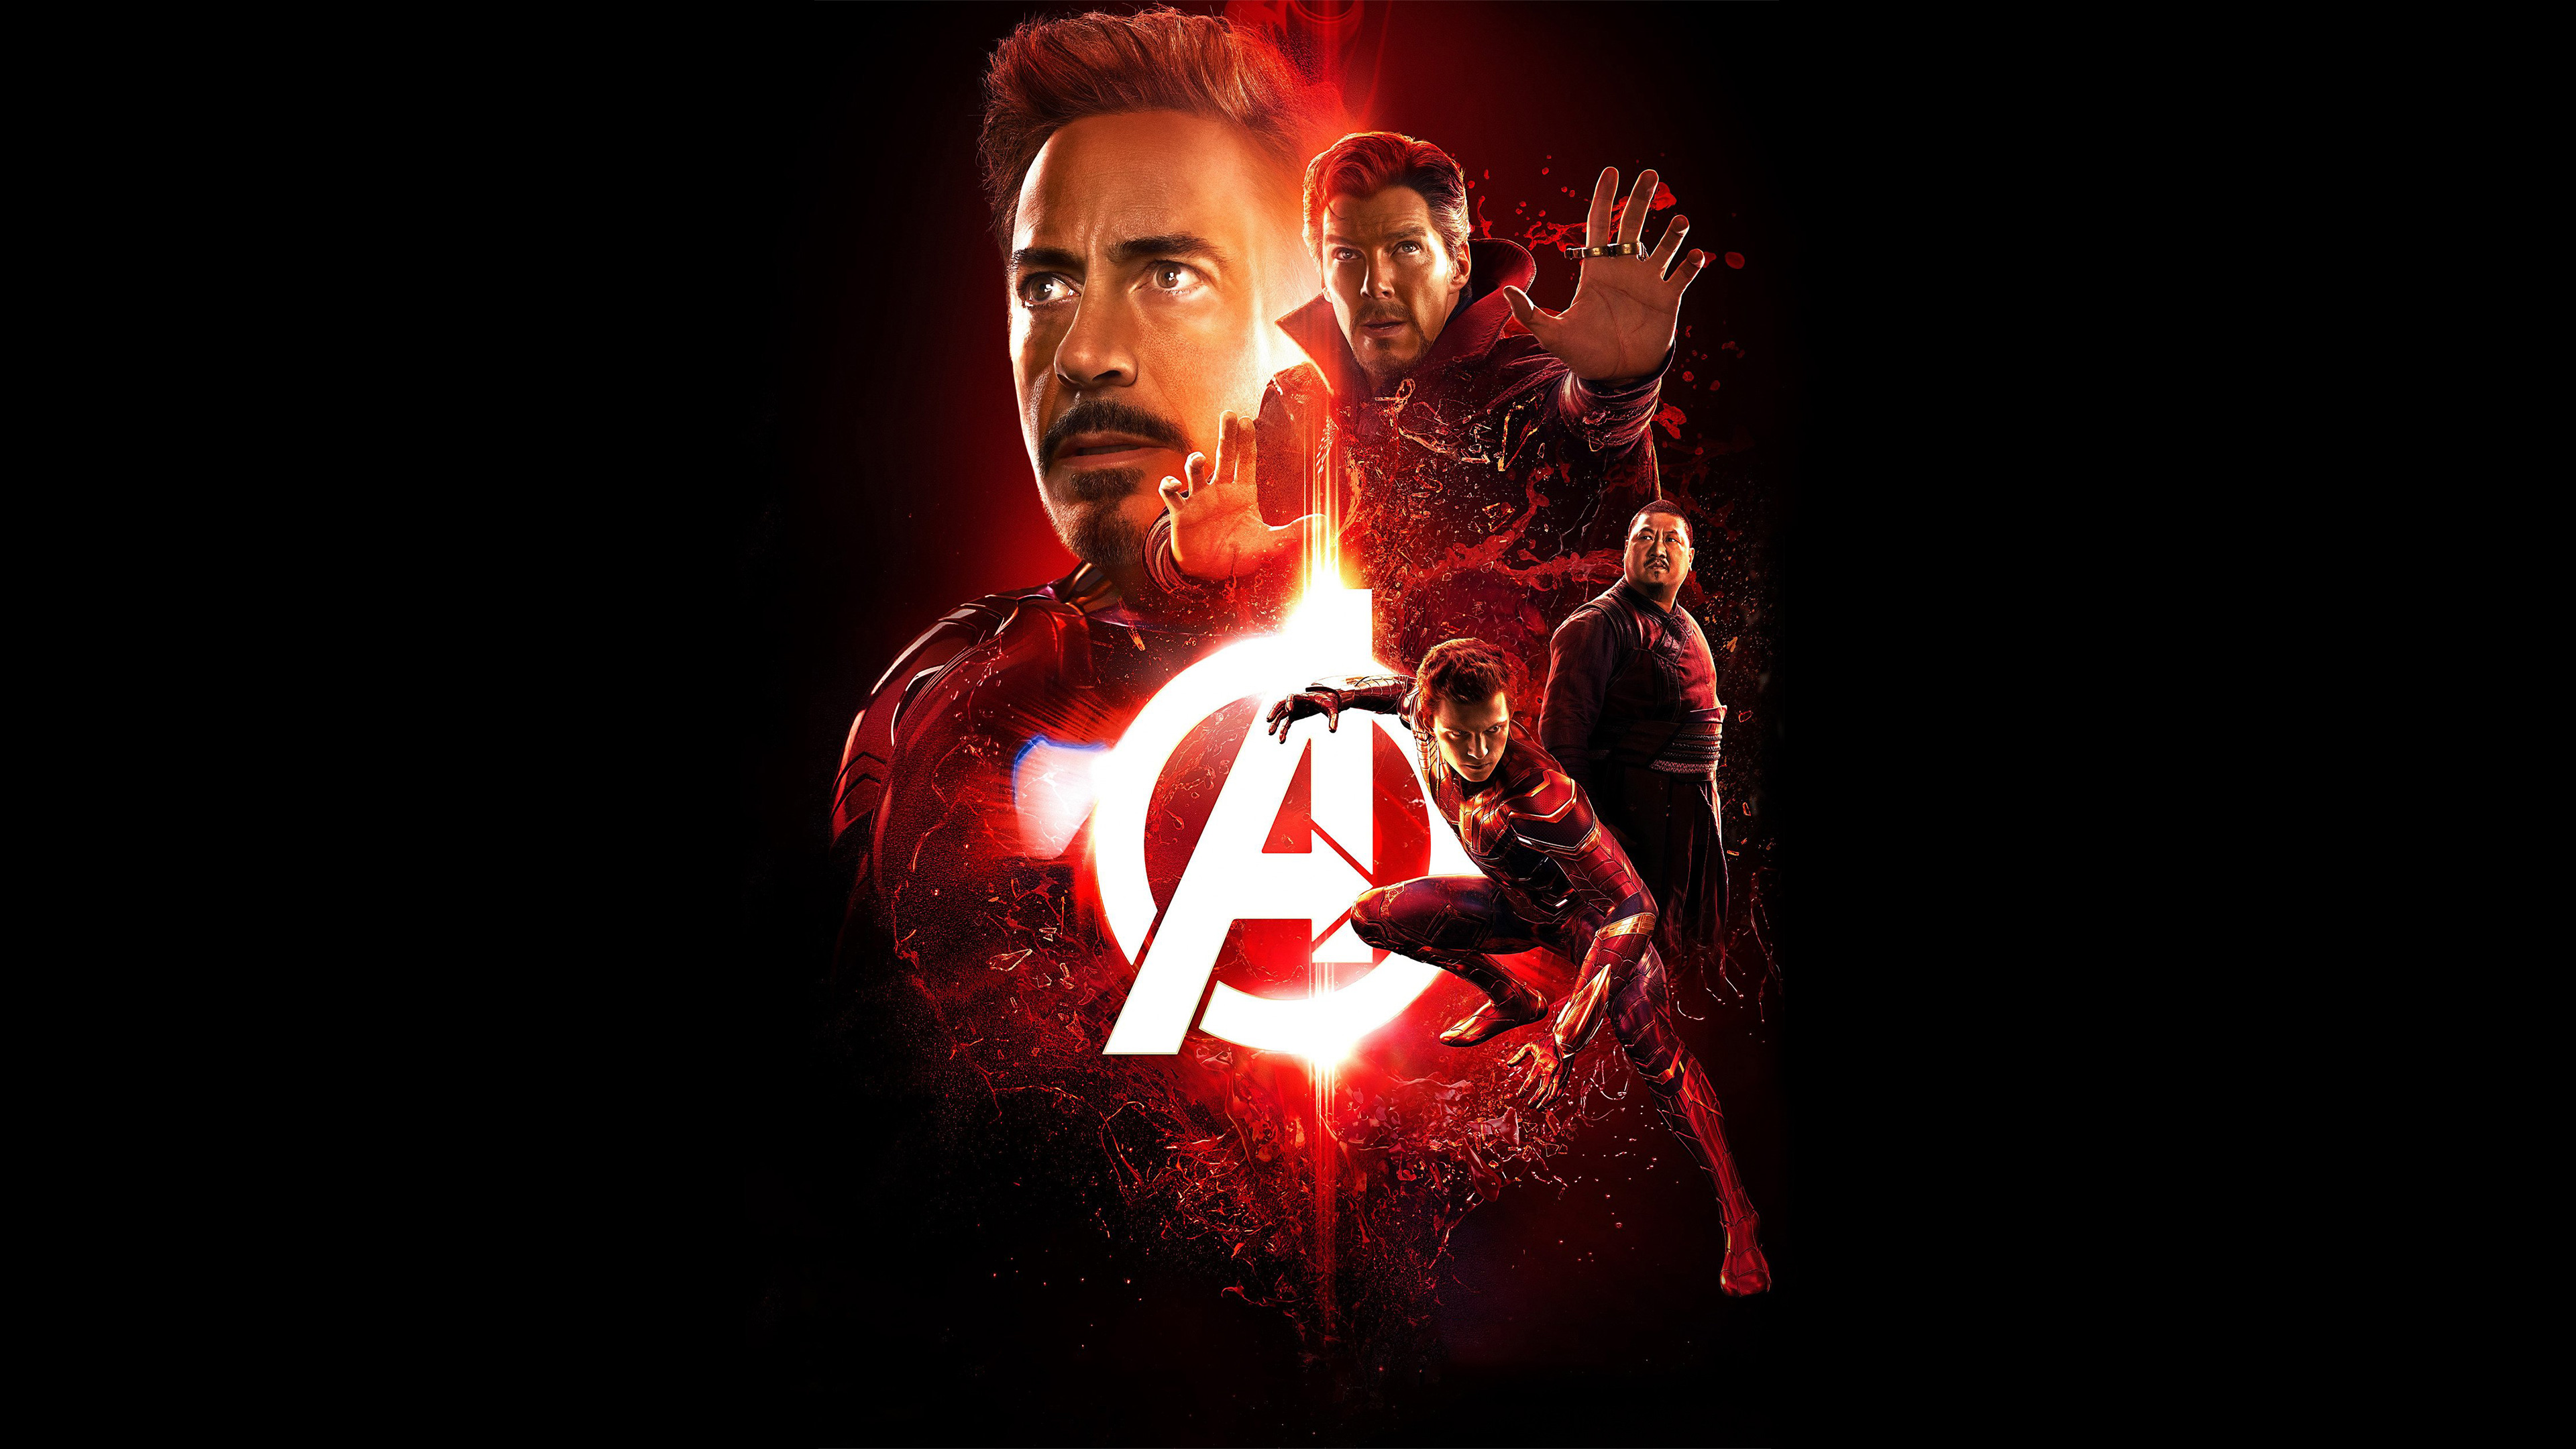 avengers infinity war 2018 reality stone poster 4k, hd movies, 4k